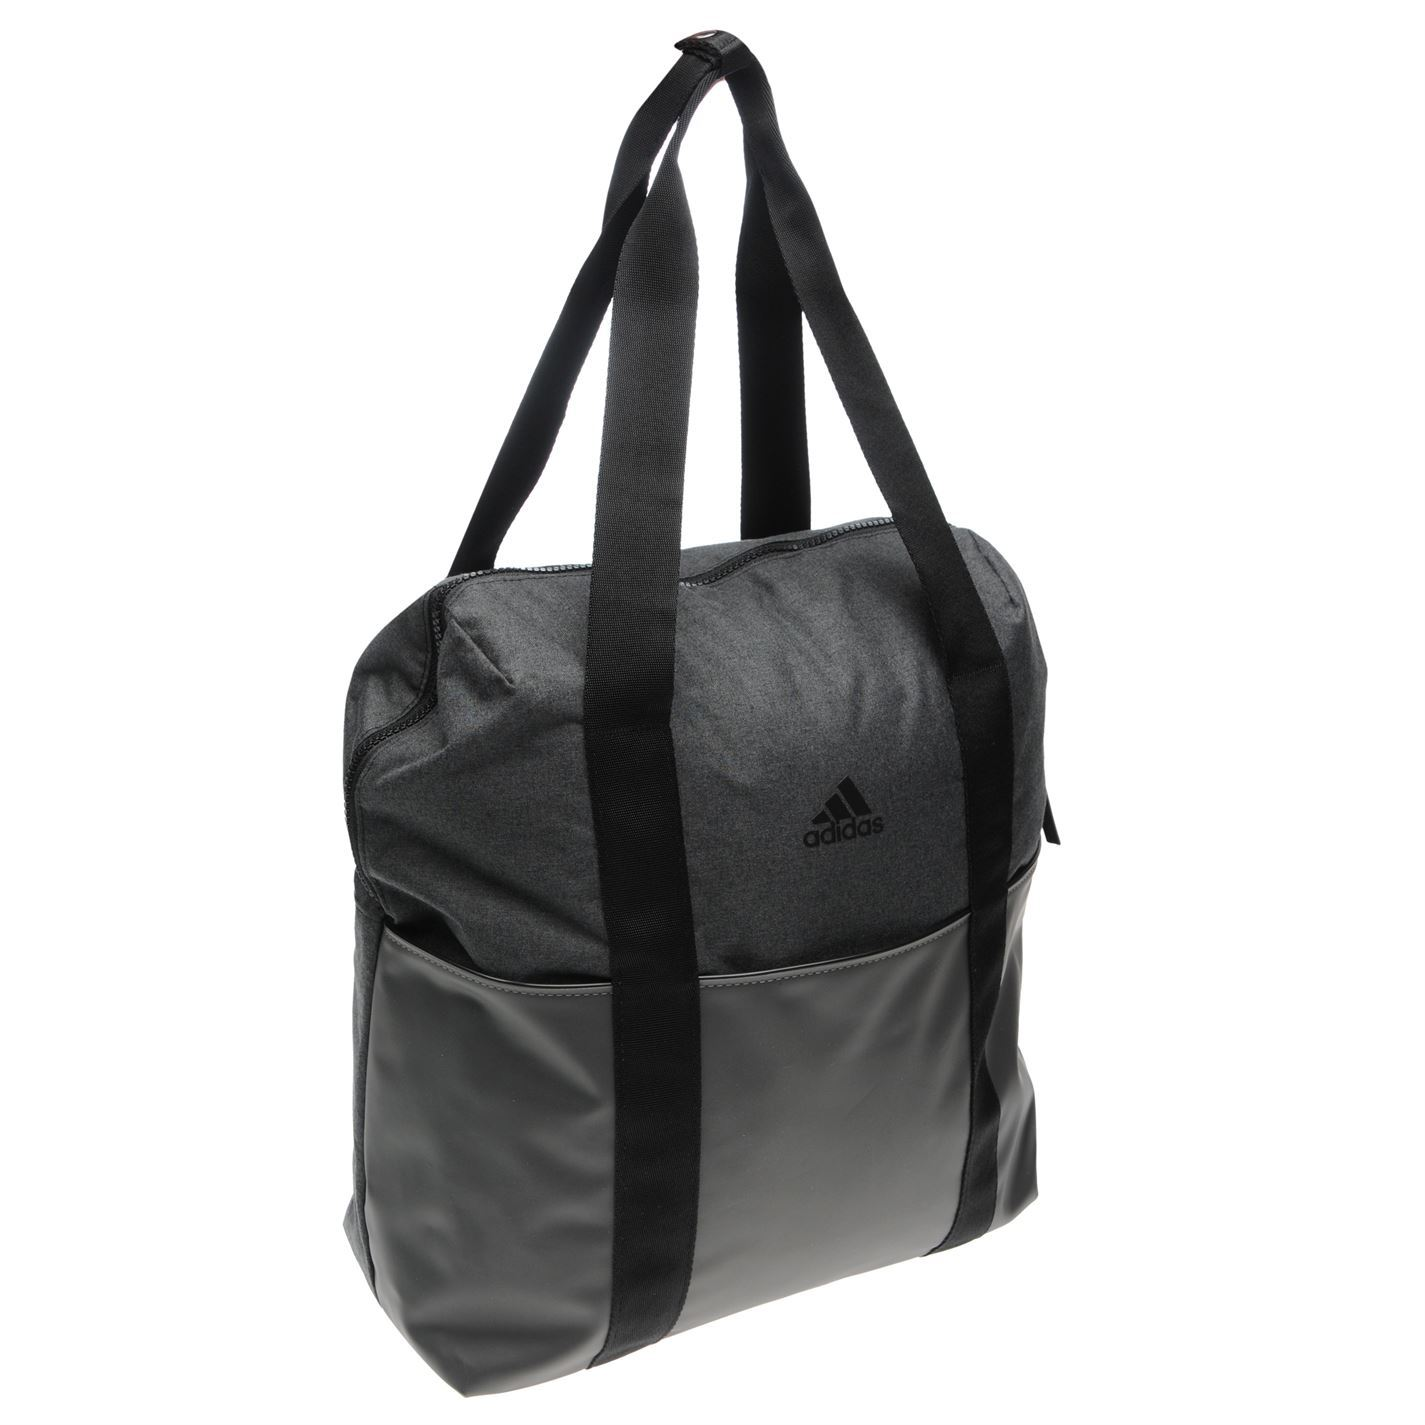 2a6dd999cd This adidas Training ID Tote Bag is perfect for taking to the gym thanks to  the large main compartment